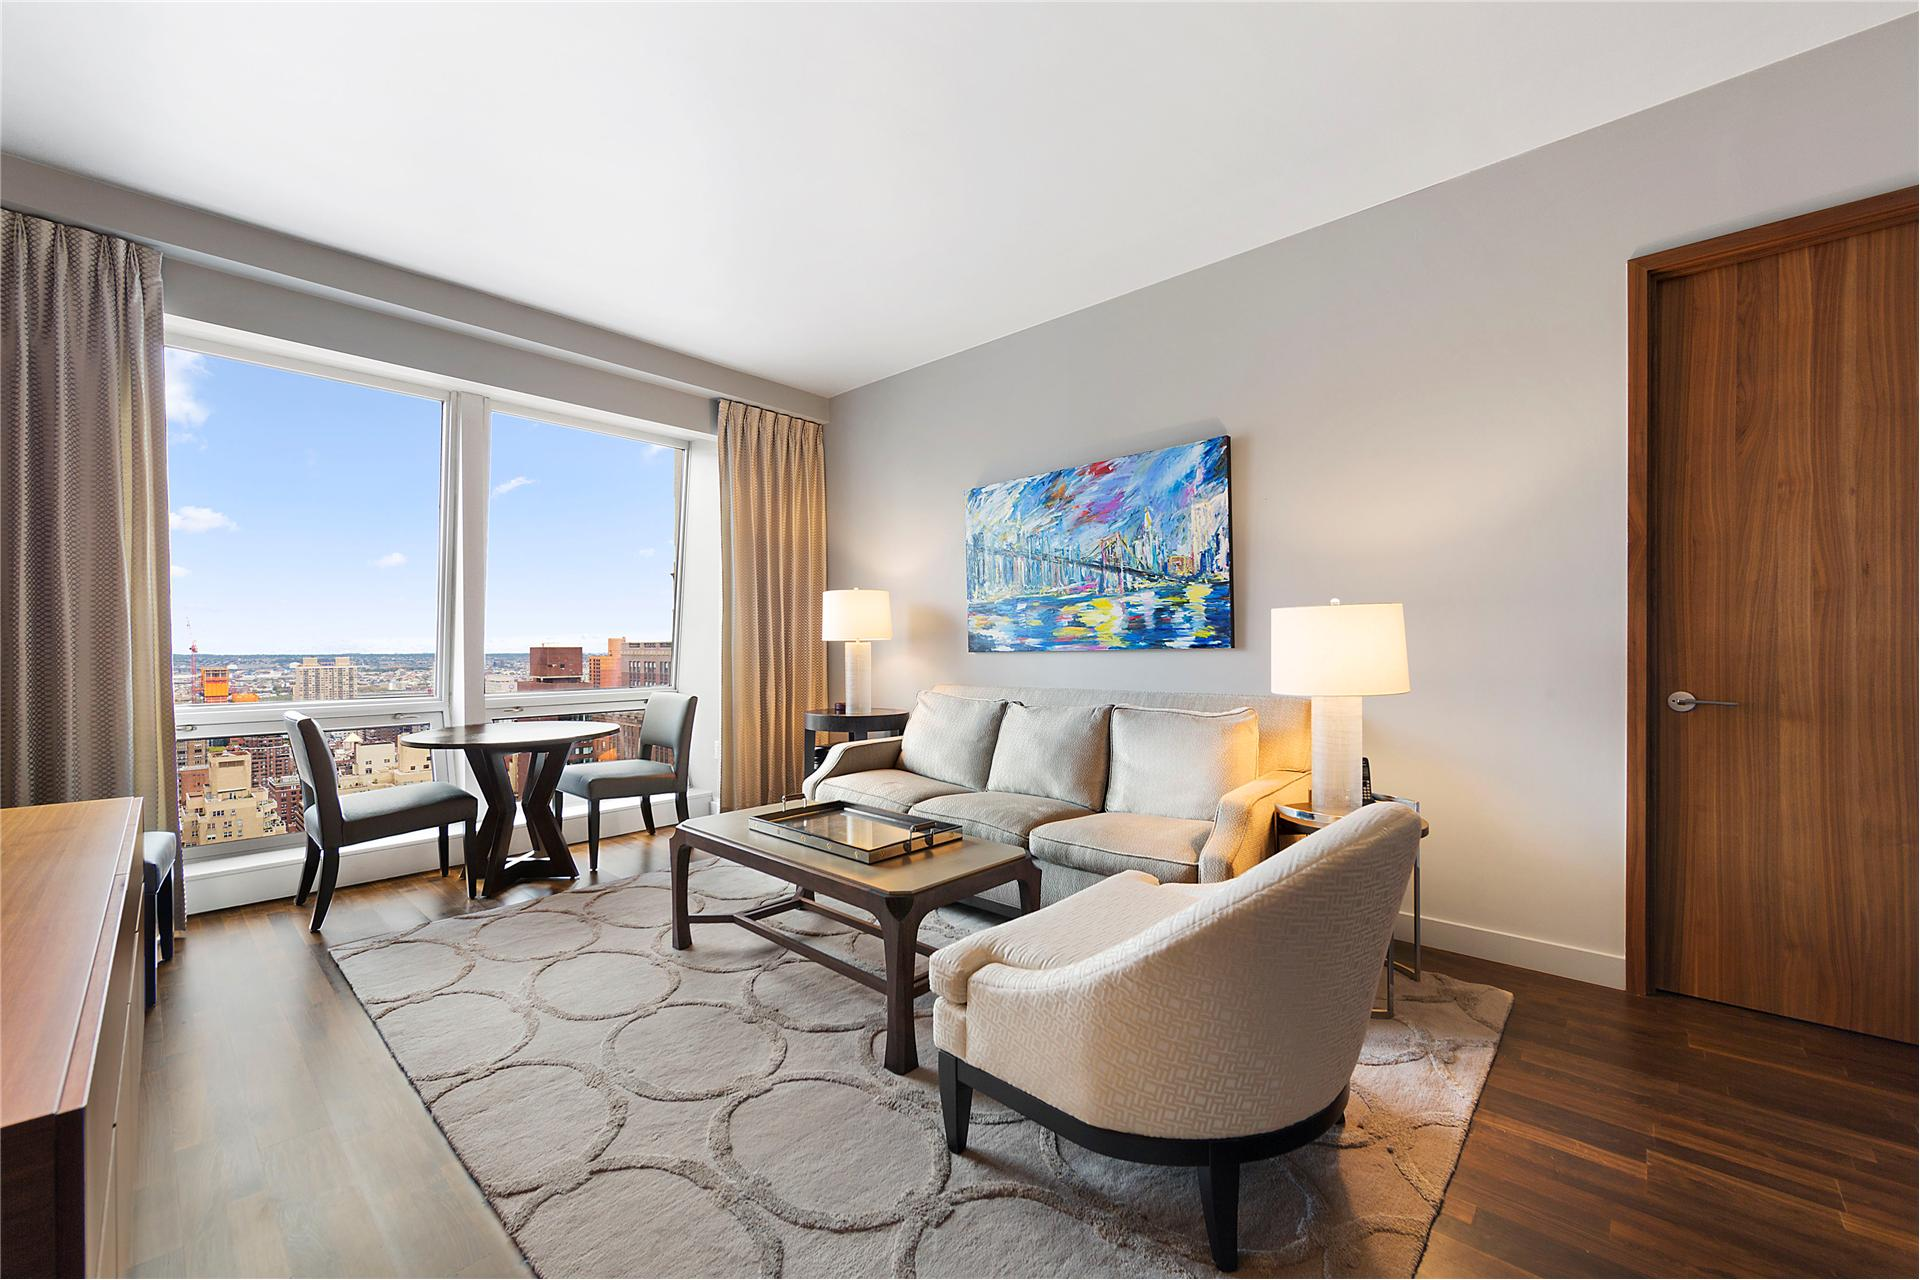 Condominium for Sale at 400 Fifth Avenue New York, New York 10016 United States